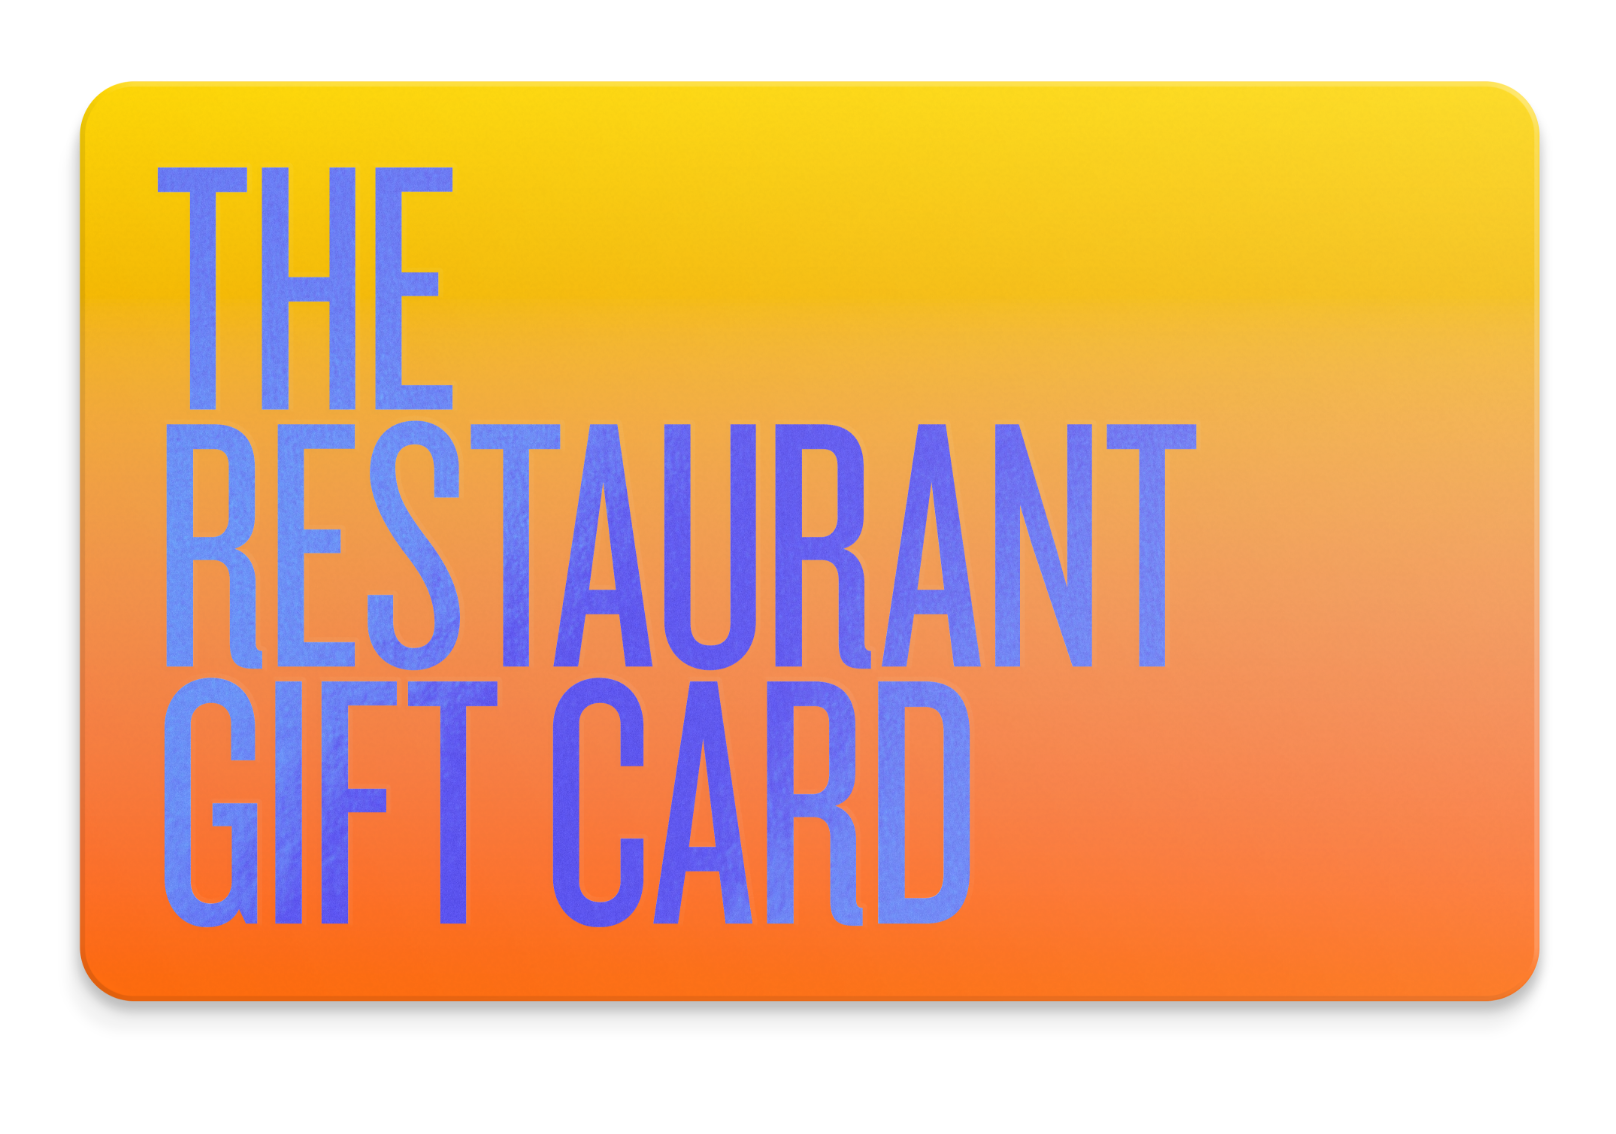 restaurant giftcard gift card-gift ideas for young women